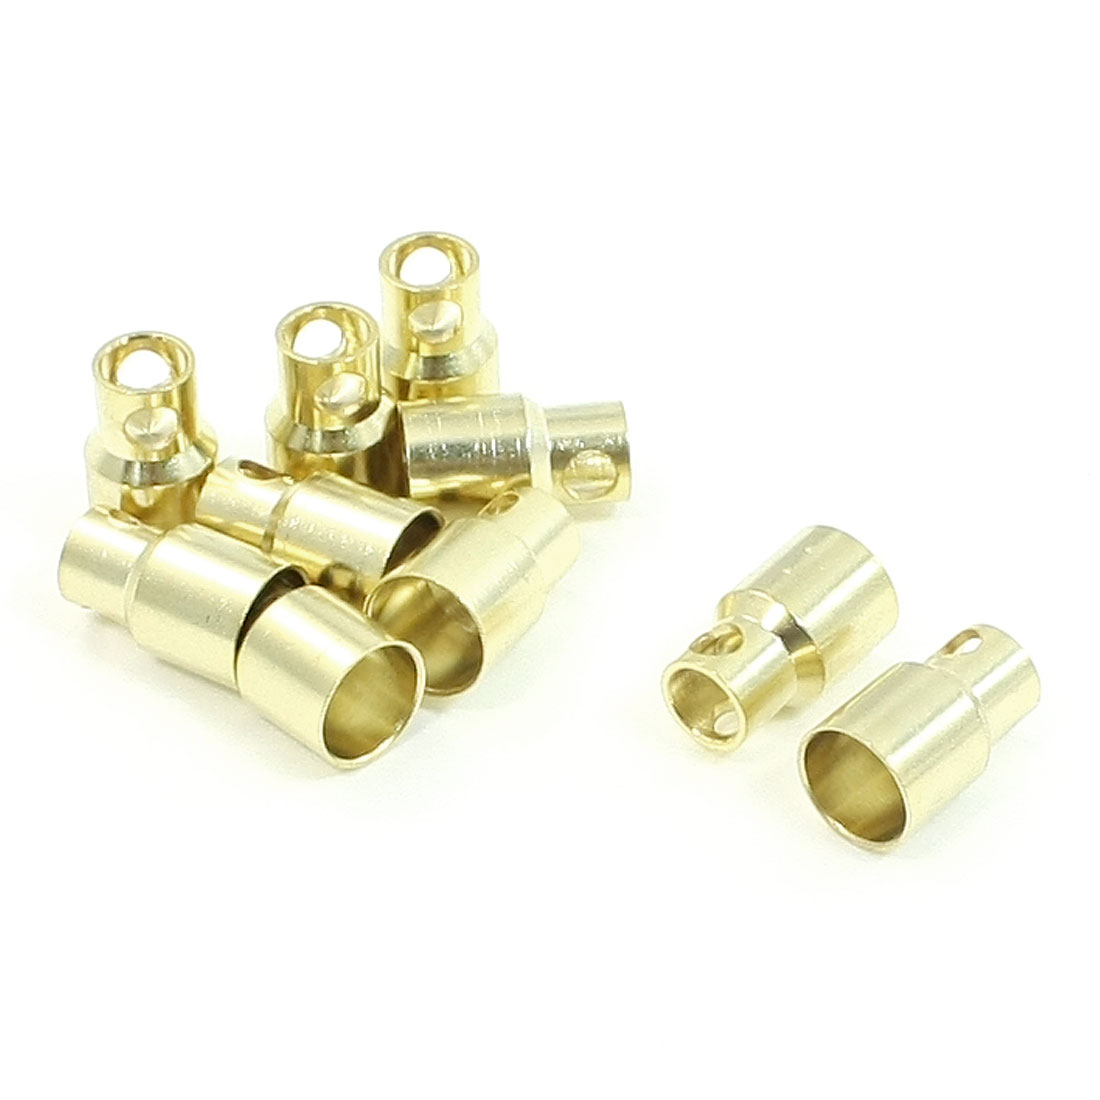 10 PCS 8mm Gold Tone Metal Connector Banana Plug for RC Helicopter